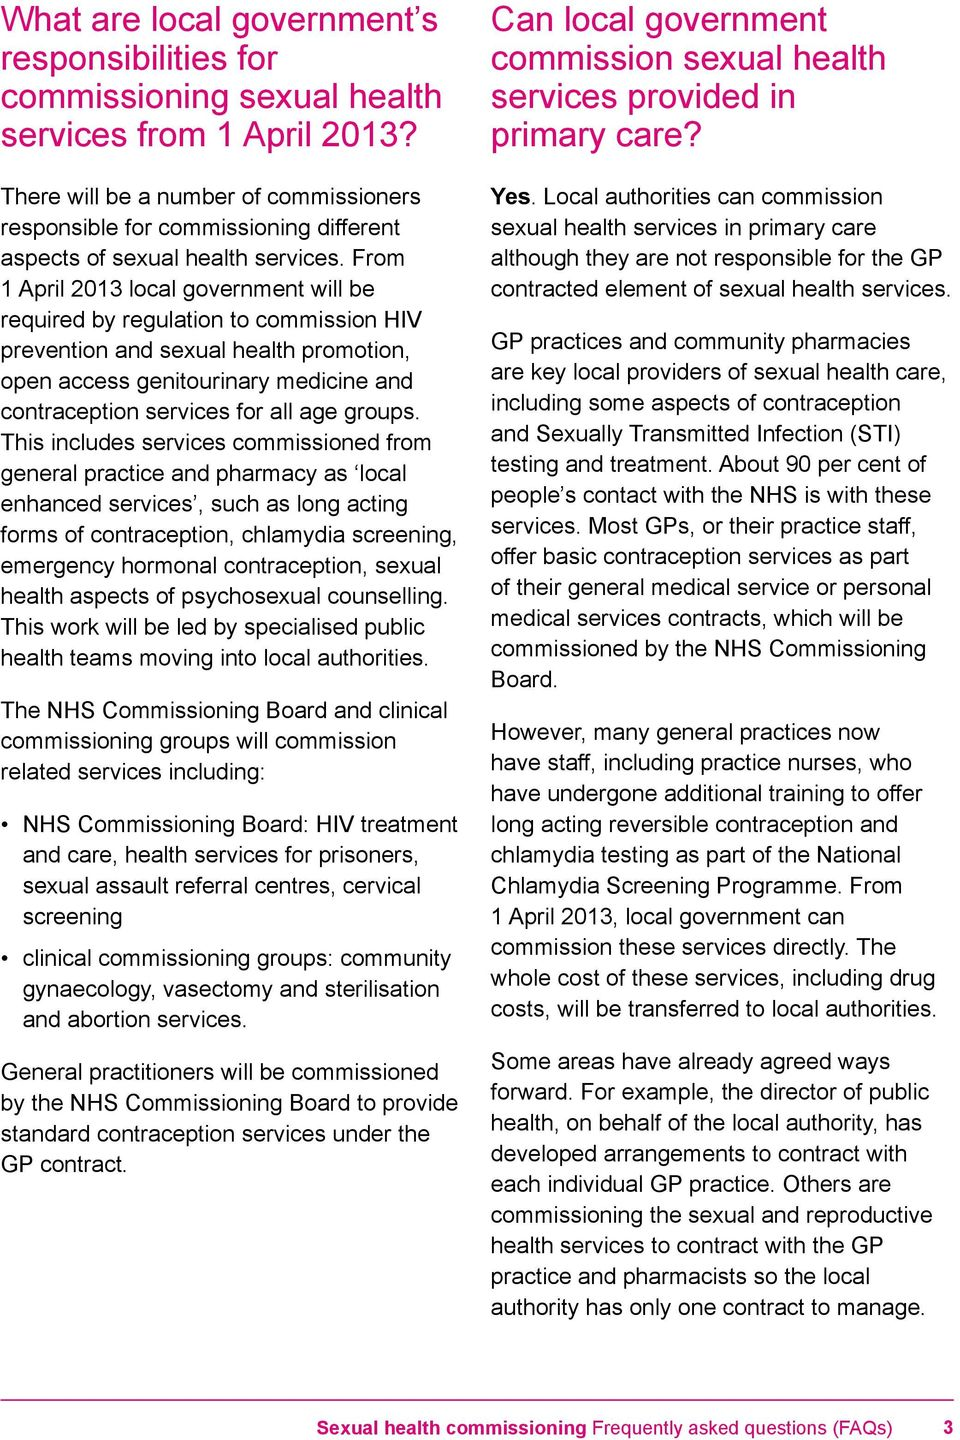 From 1 April 2013 local government will be required by regulation to commission HIV prevention and sexual health promotion, open access genitourinary medicine and contraception services for all age